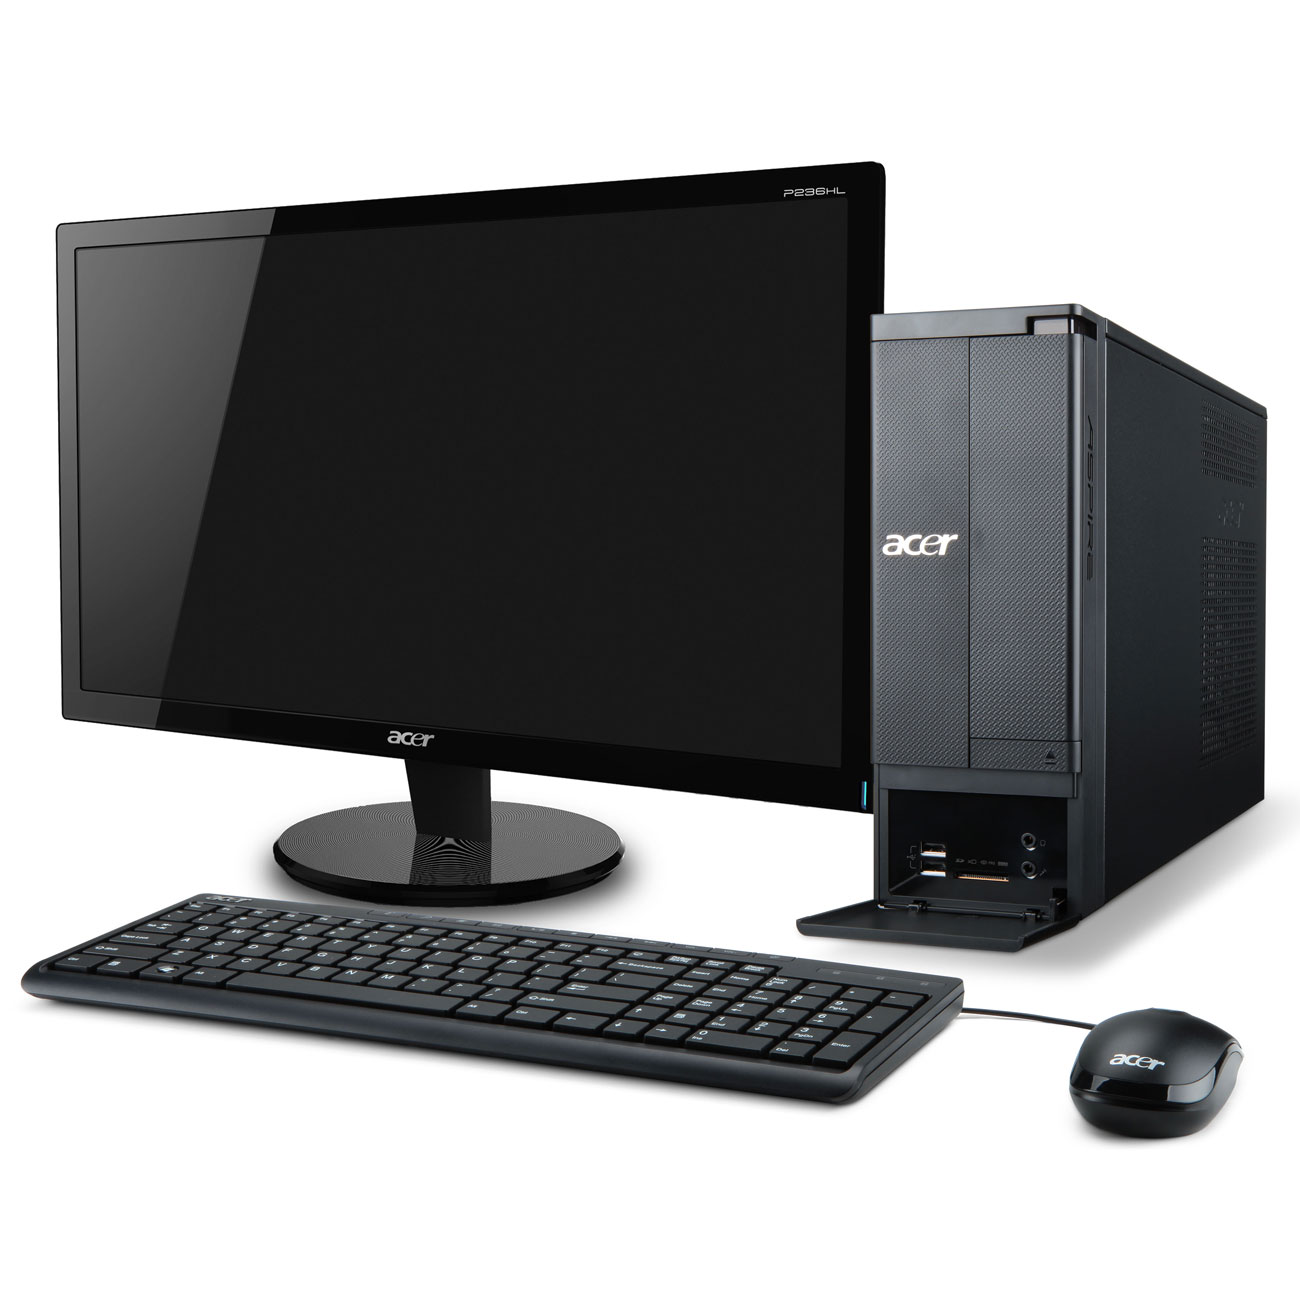 acer aspire x1430 007 ob 20 pc de bureau acer sur ldlc. Black Bedroom Furniture Sets. Home Design Ideas